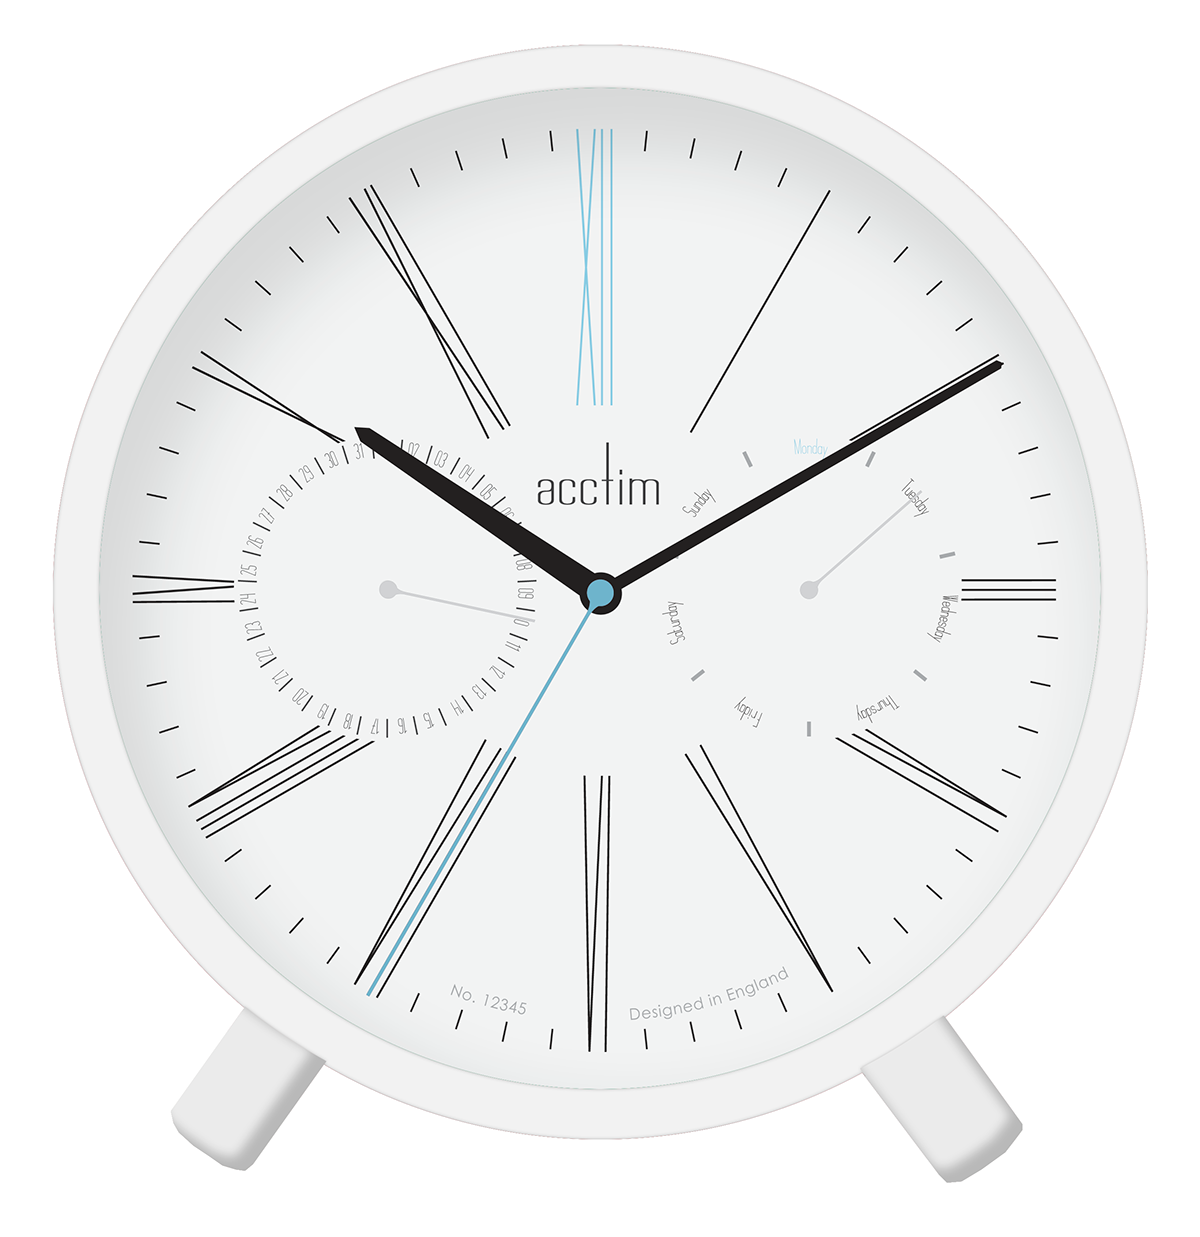 Product Deign Sketch Clock Collection Acctim On Behance